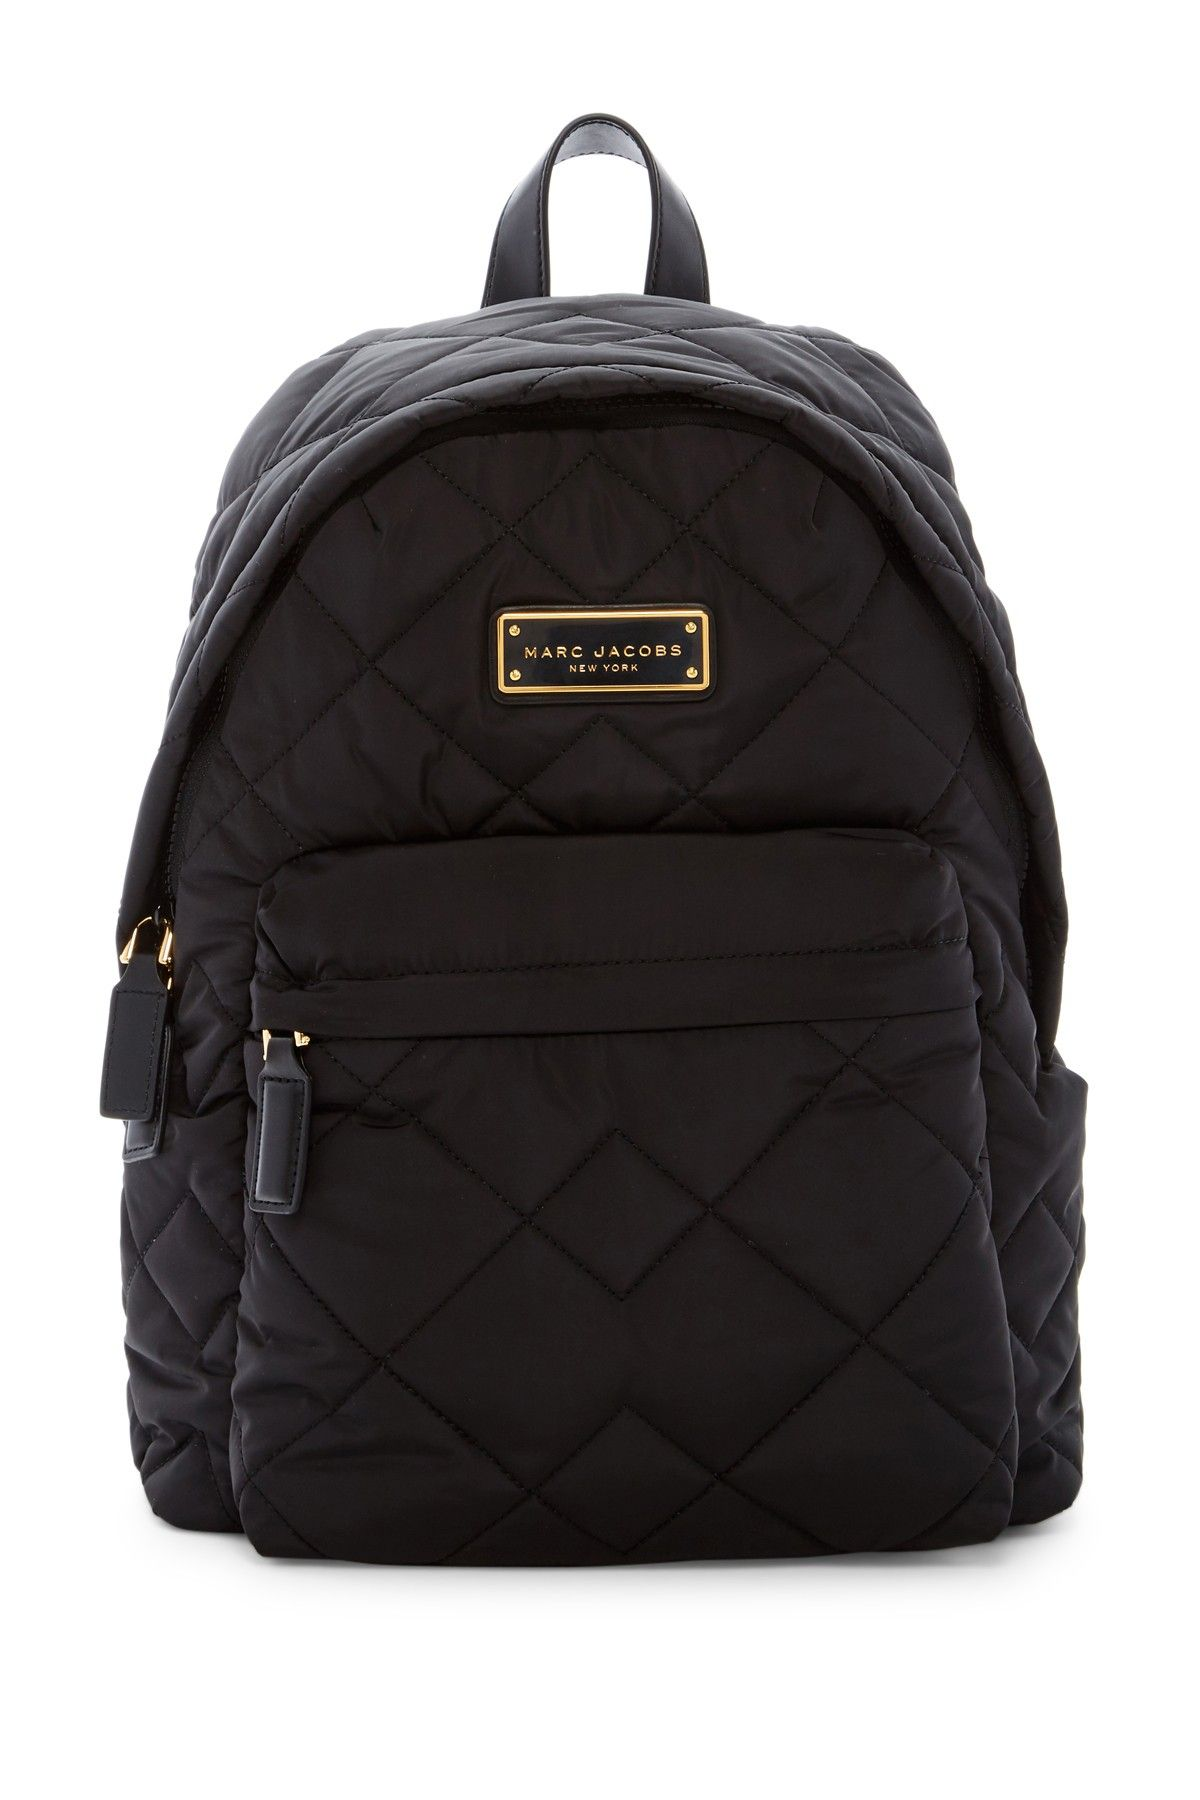 9aa61e40d5c5 Quilted Nylon Backpack by Marc Jacobs on  nordstrom rack